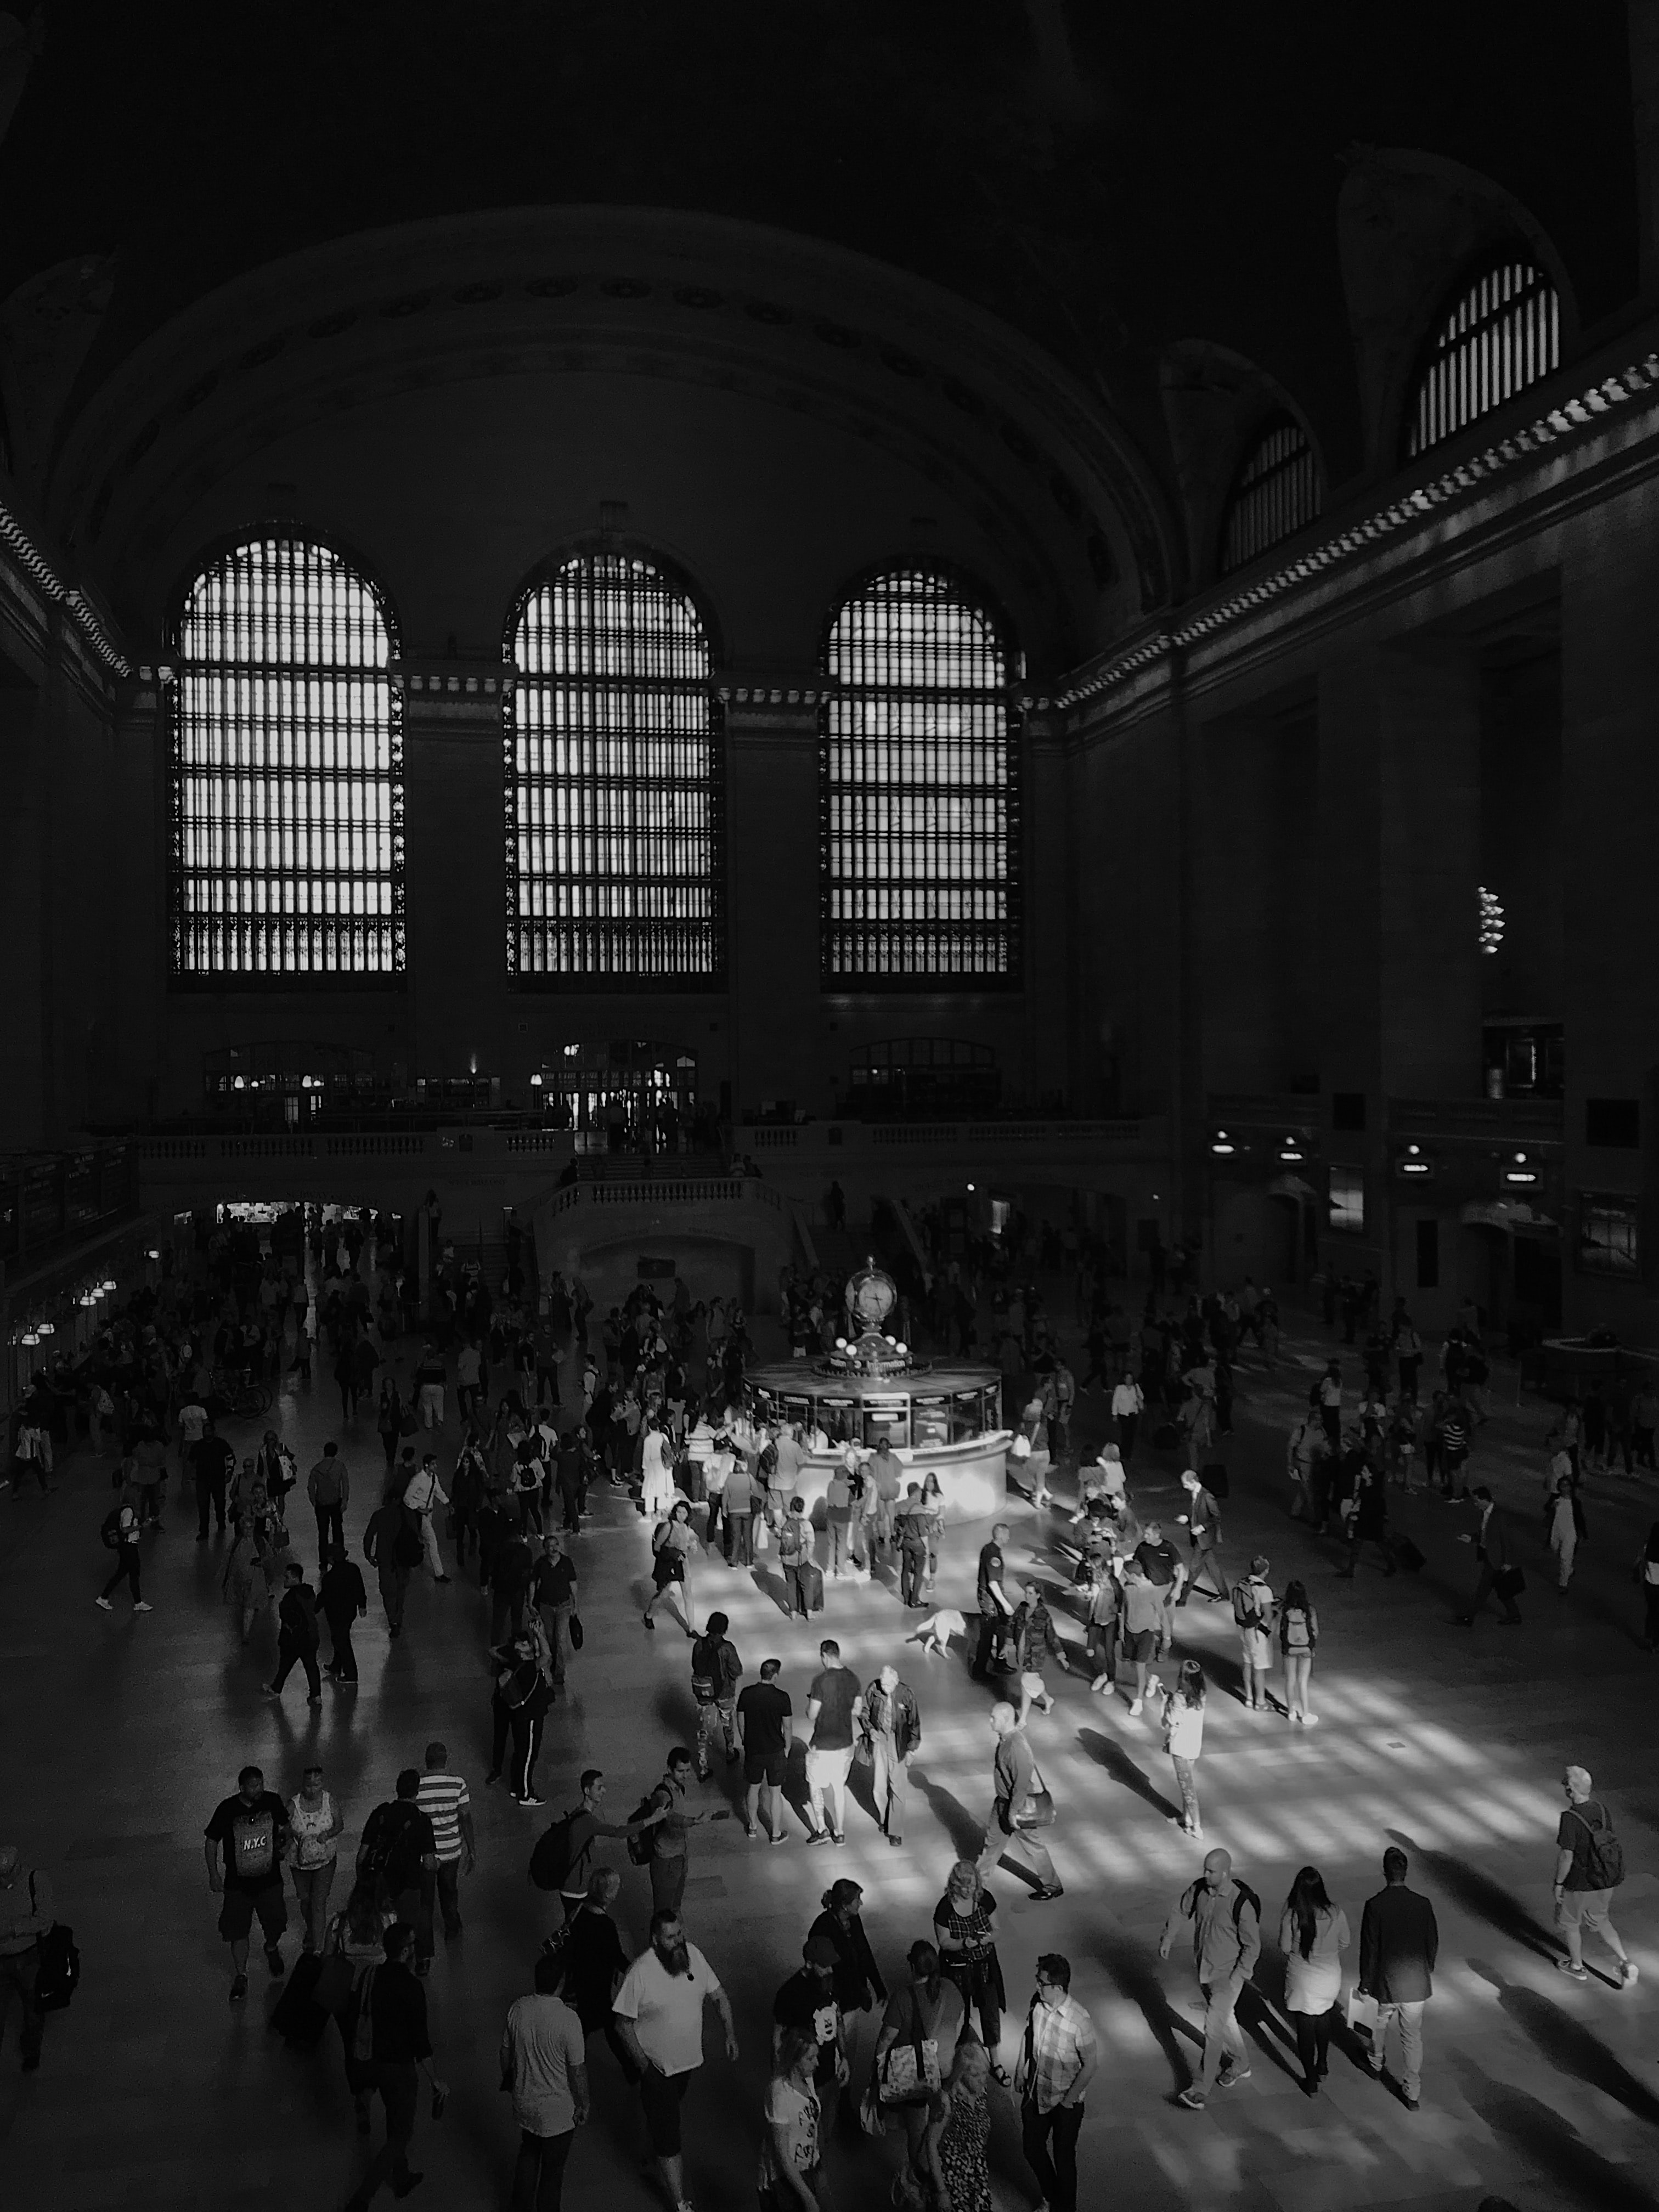 grayscale photography of people inside building